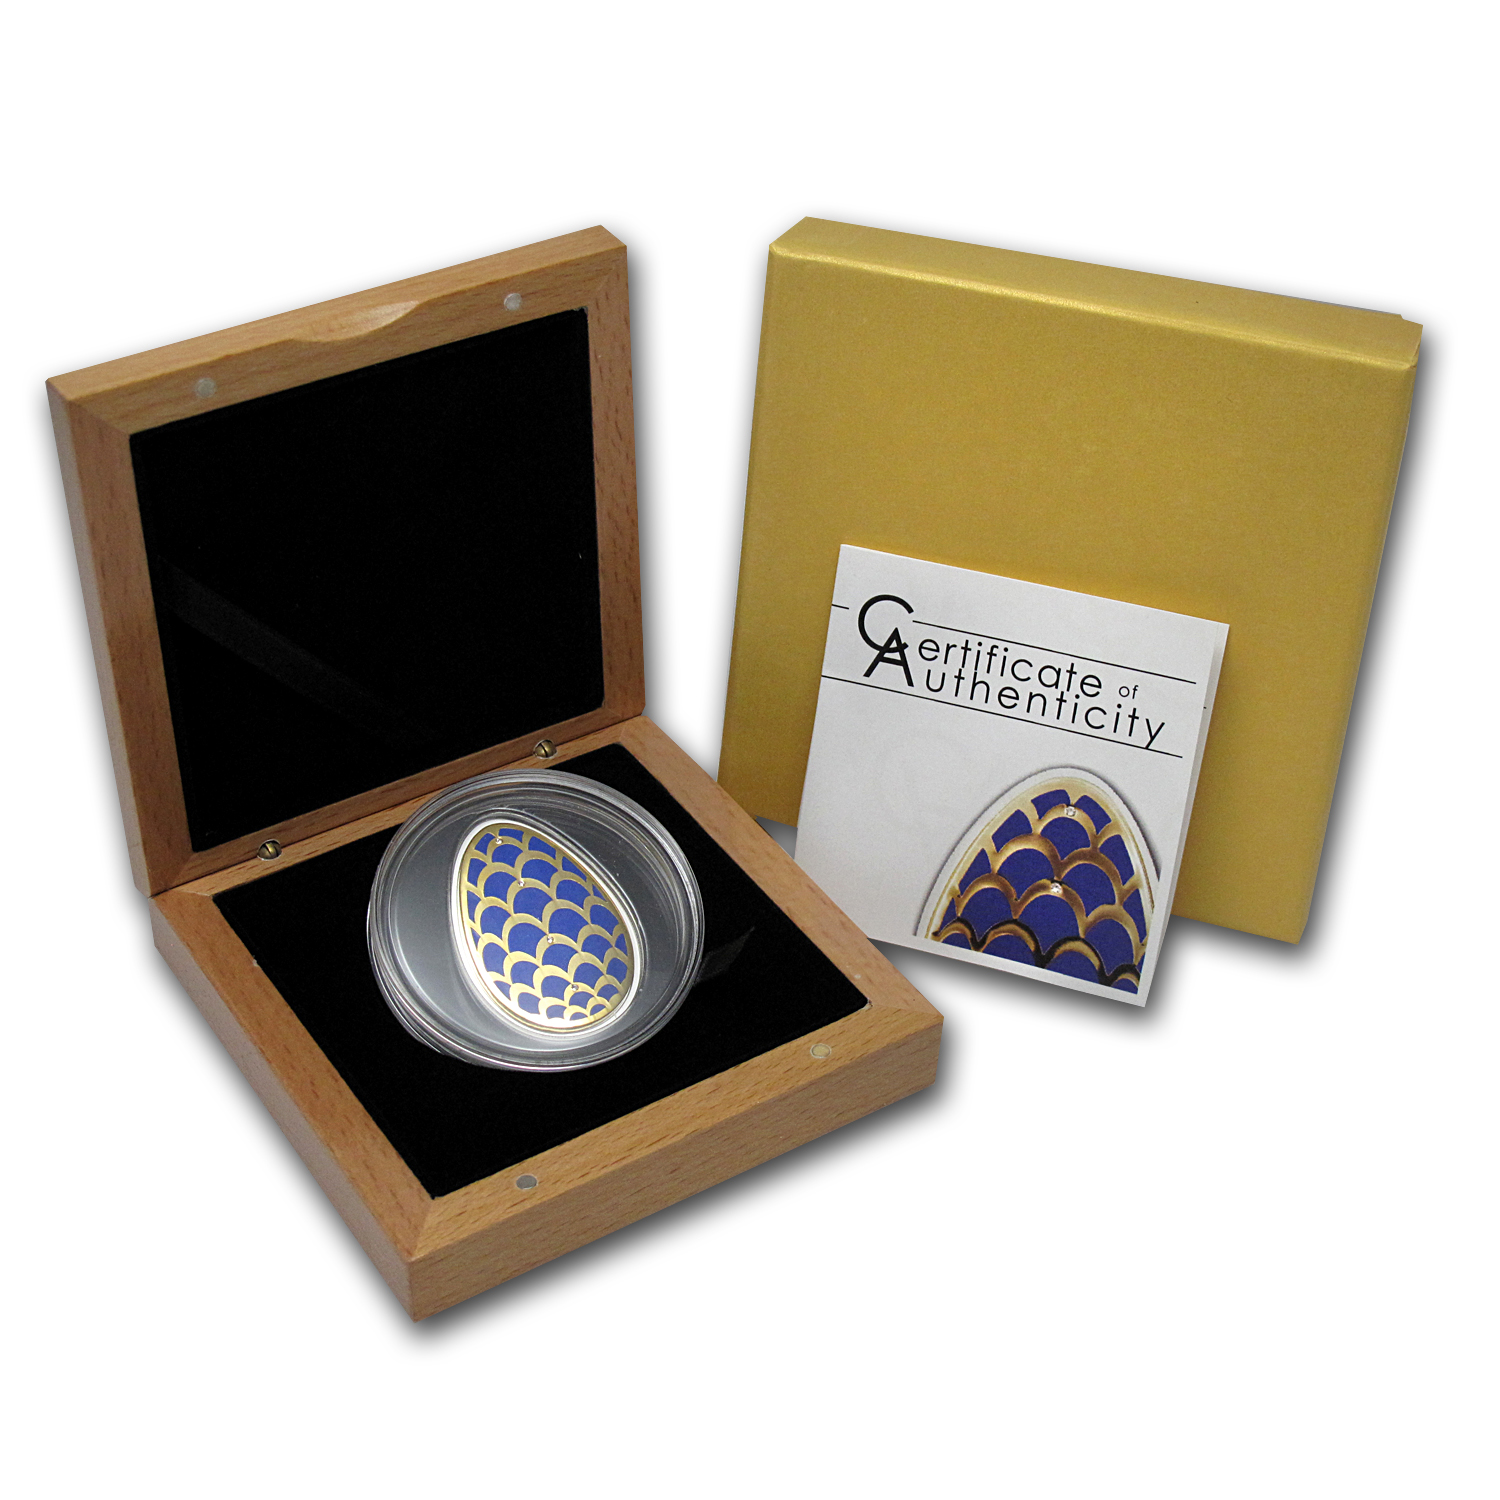 2012 Cook Islands Proof Silver Imperial Egg in Cloisonné-Pinecone